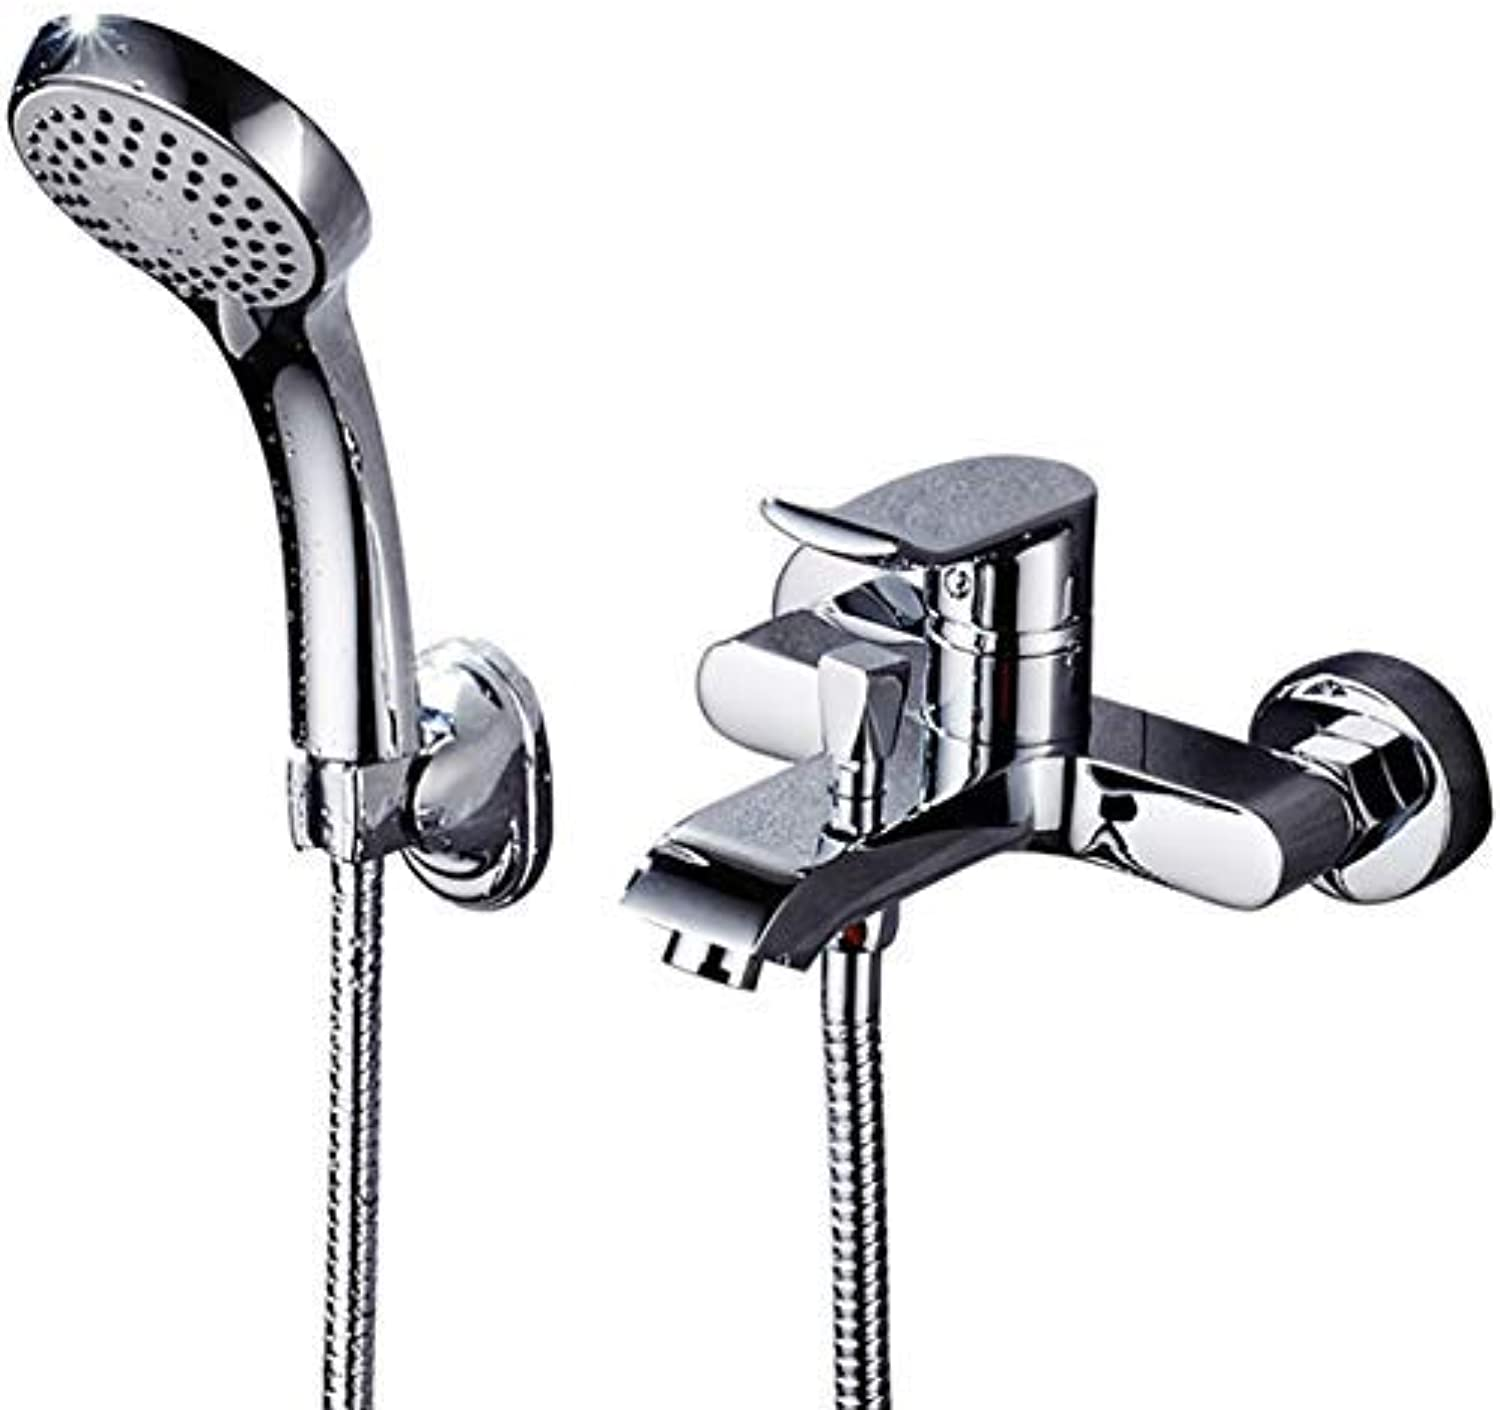 JINSH HOME Showers Full Copper Bathtub Faucet Shower With Double Outlet With Hand Shower